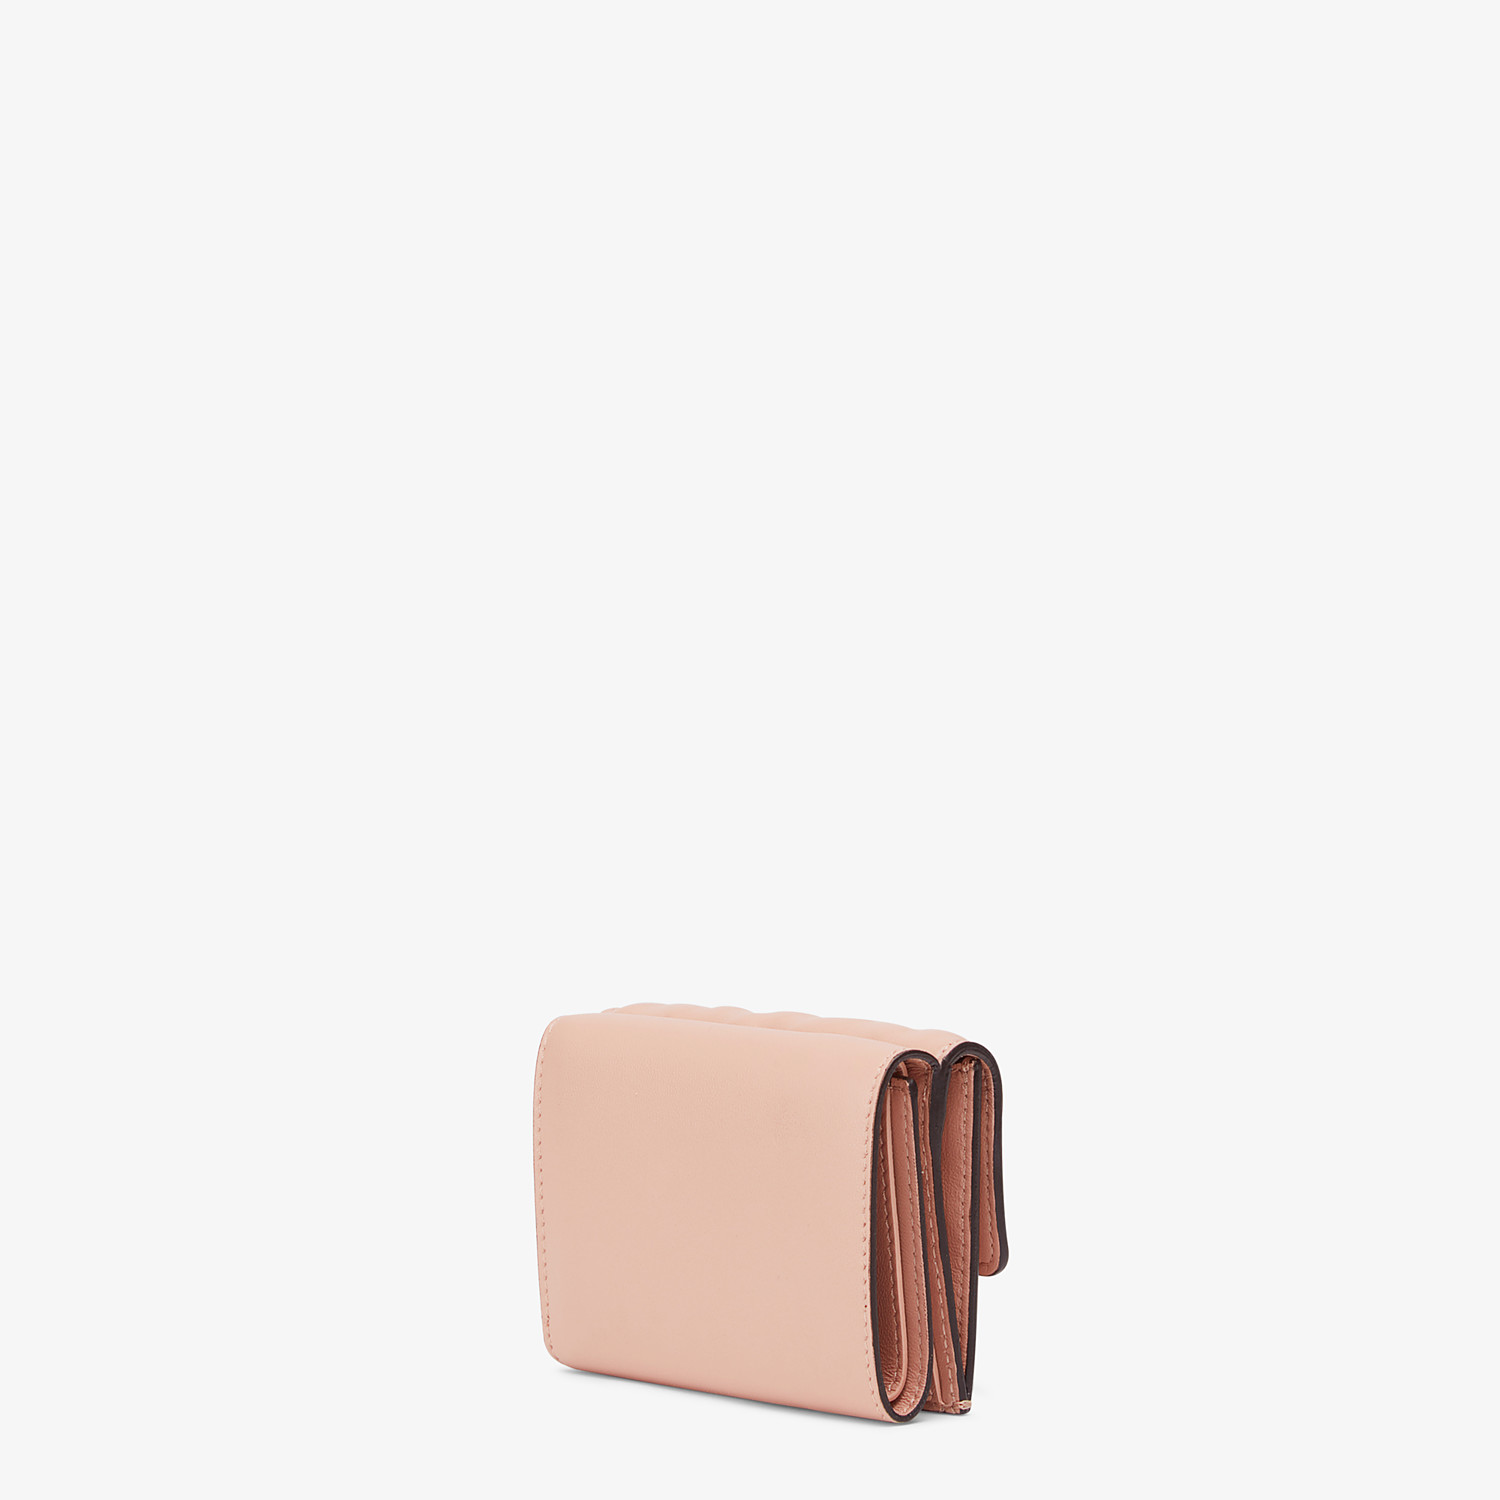 FENDI MICRO TRIFOLD - Pink nappa leather wallet - view 2 detail